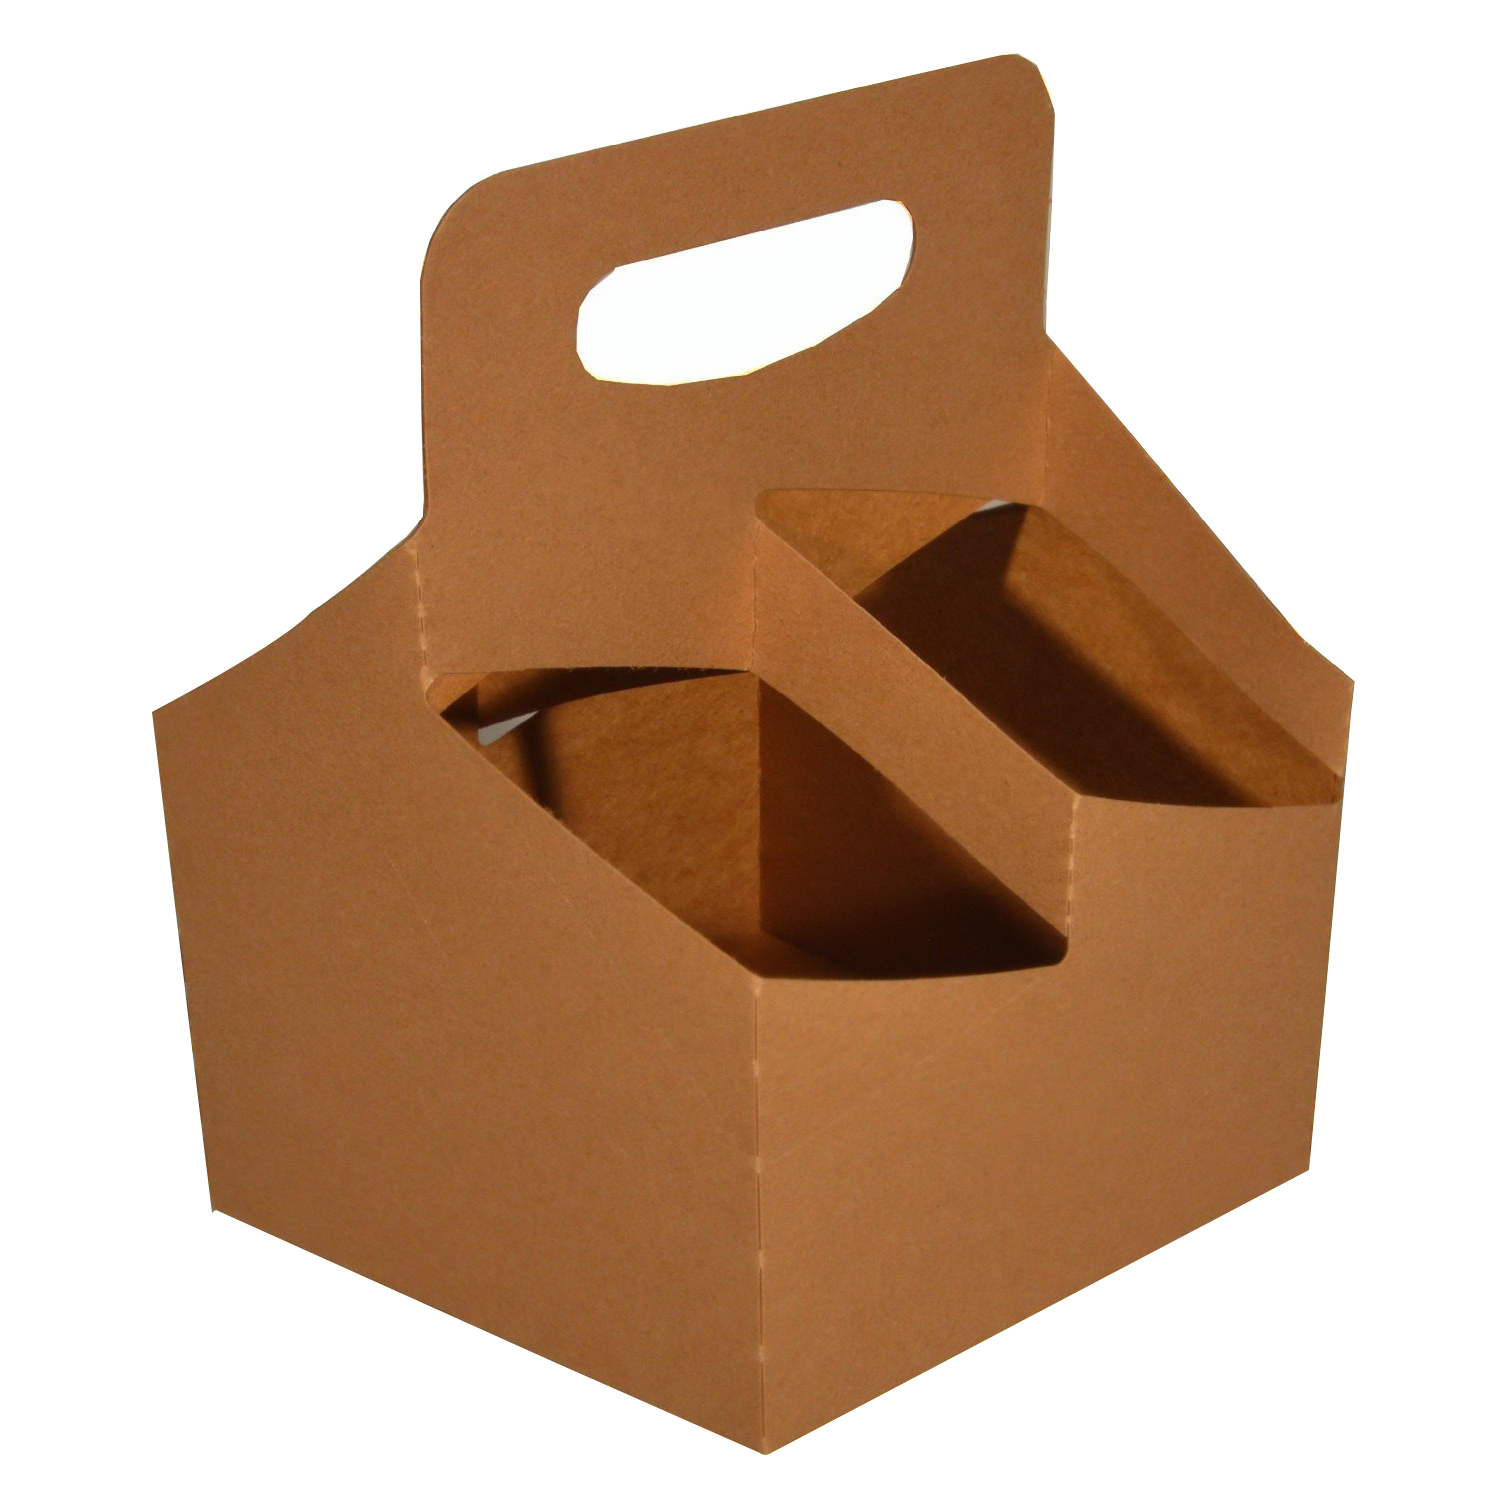 "Southern Champion Kraft Board Recycle Carry Tray With Handle, 6 - 24 oz., 6.5"" Length x 6.25"" Width 